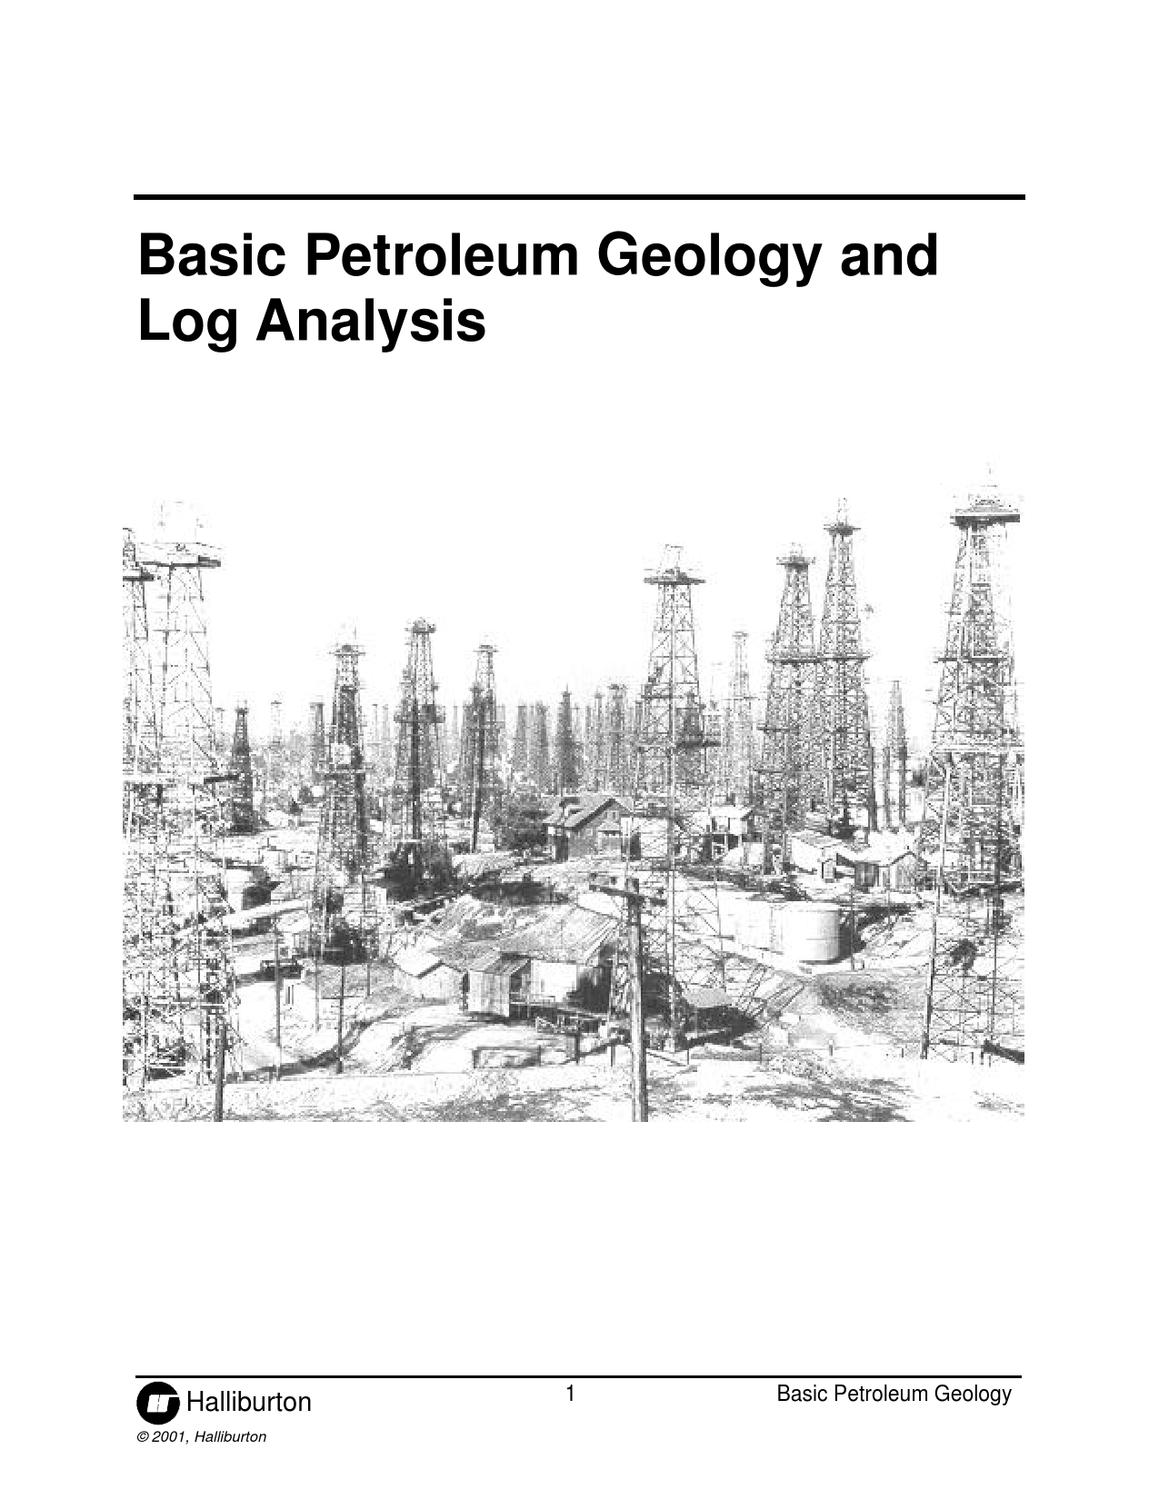 Basic Petroleum Geology And Log Analysis, Halliburton by